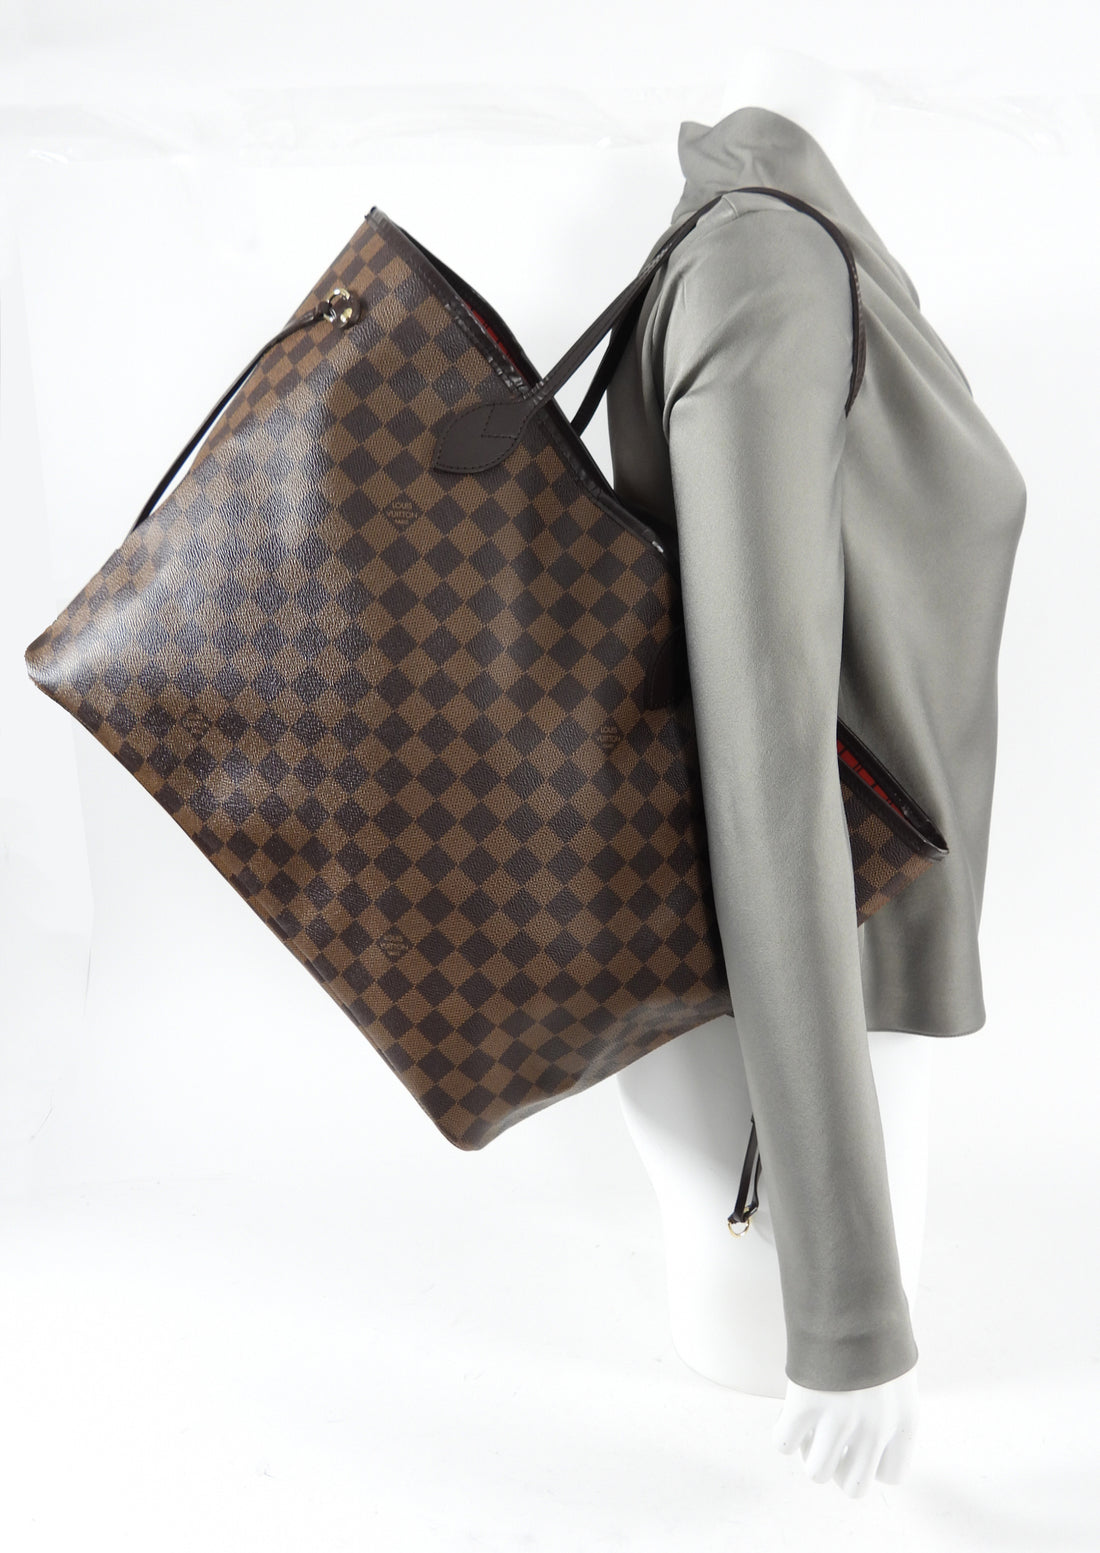 Louis Vuitton Damier Ebene Neverfull GM Tote Bag